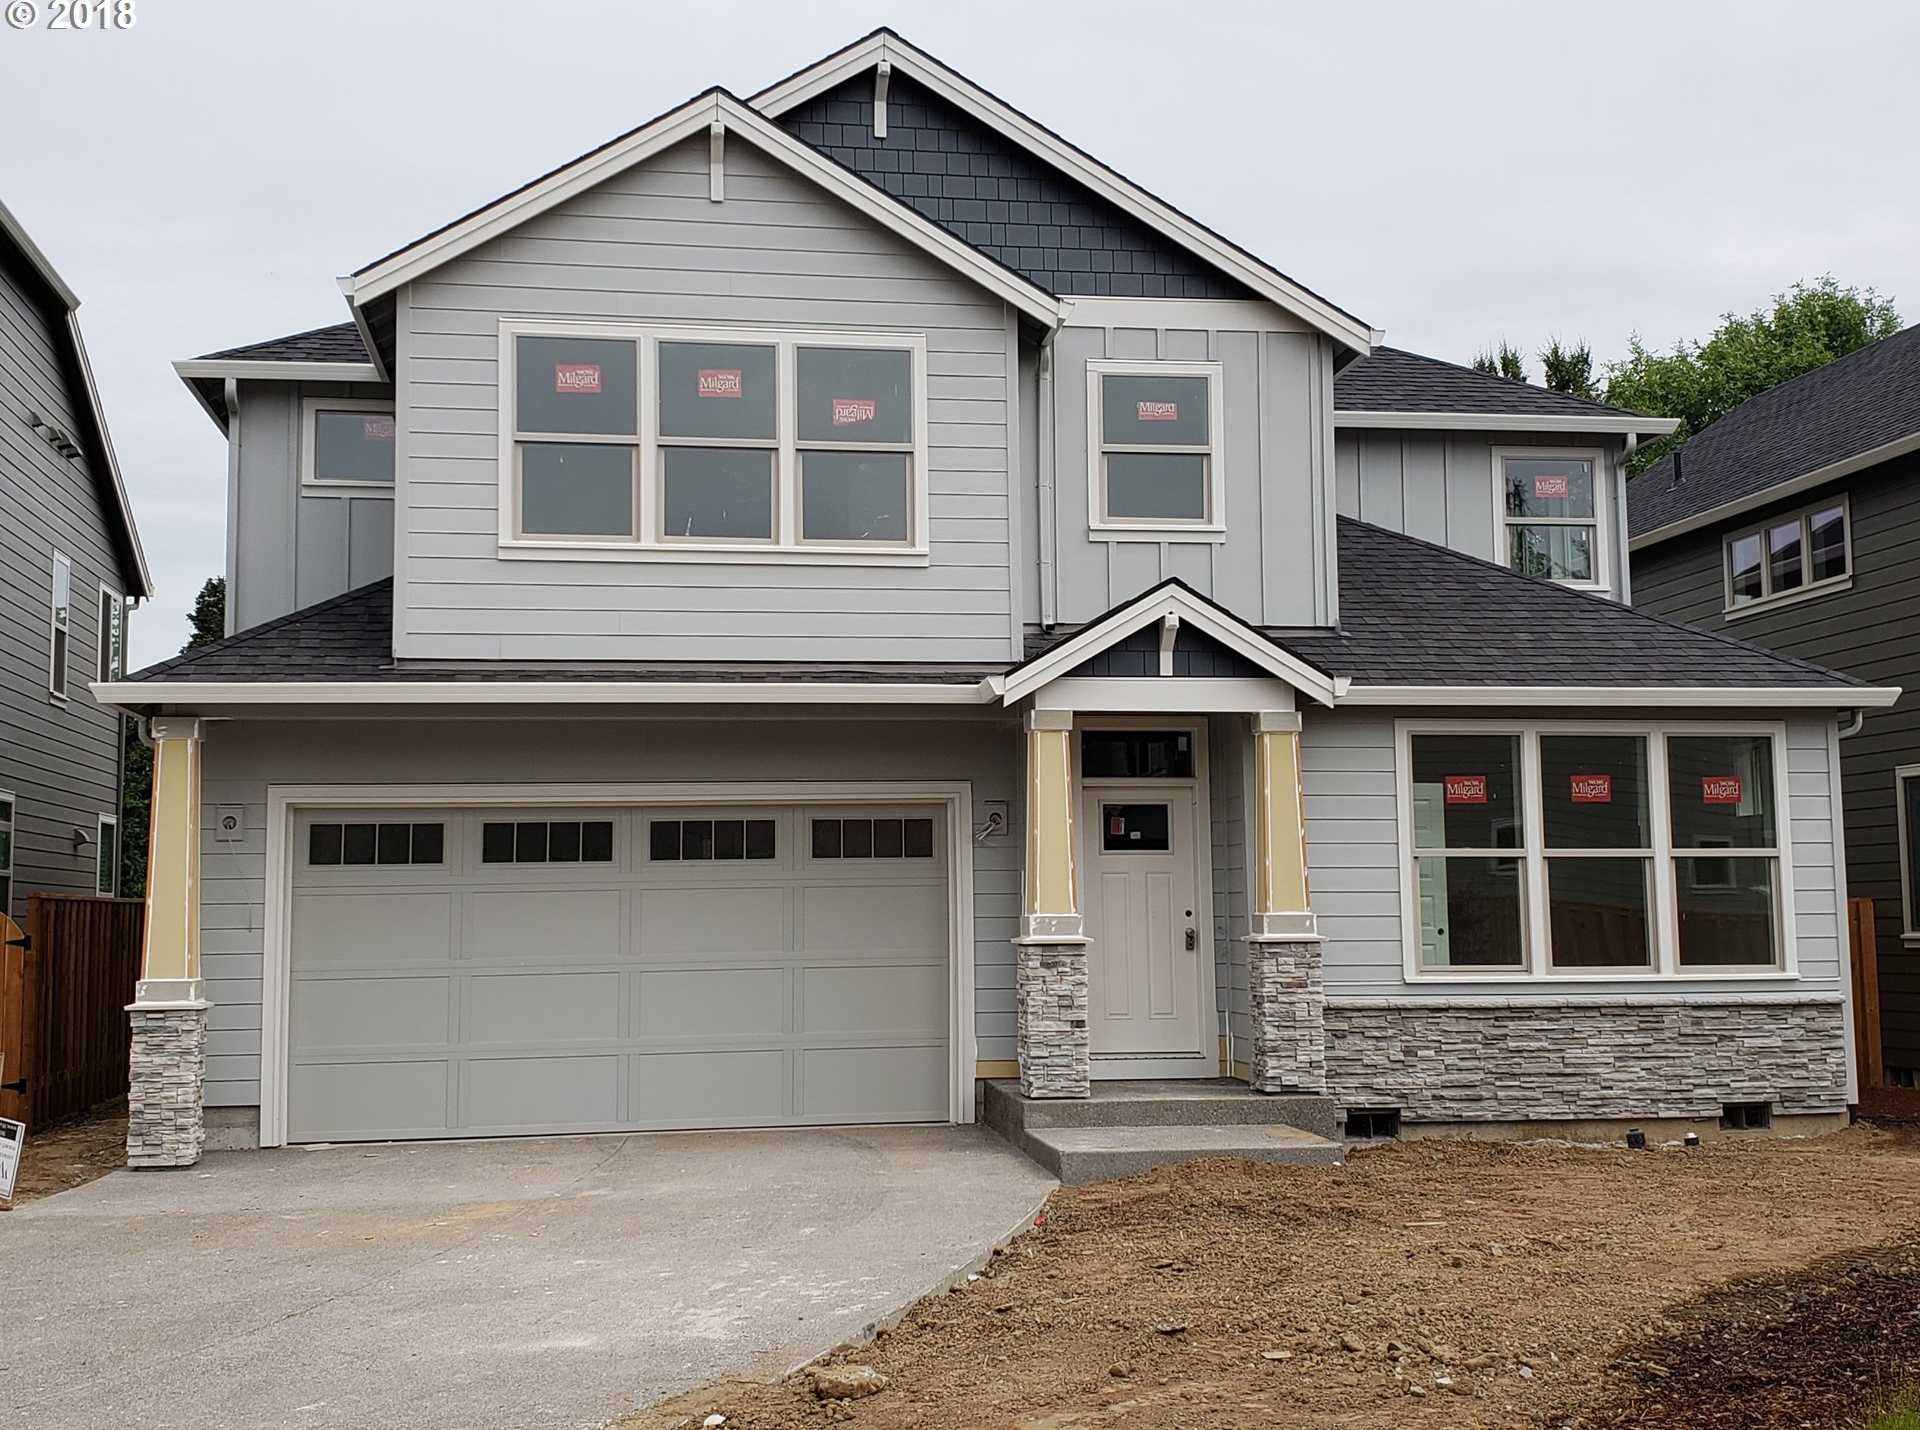 $652,950 - 6Br/4Ba -  for Sale in Tigard